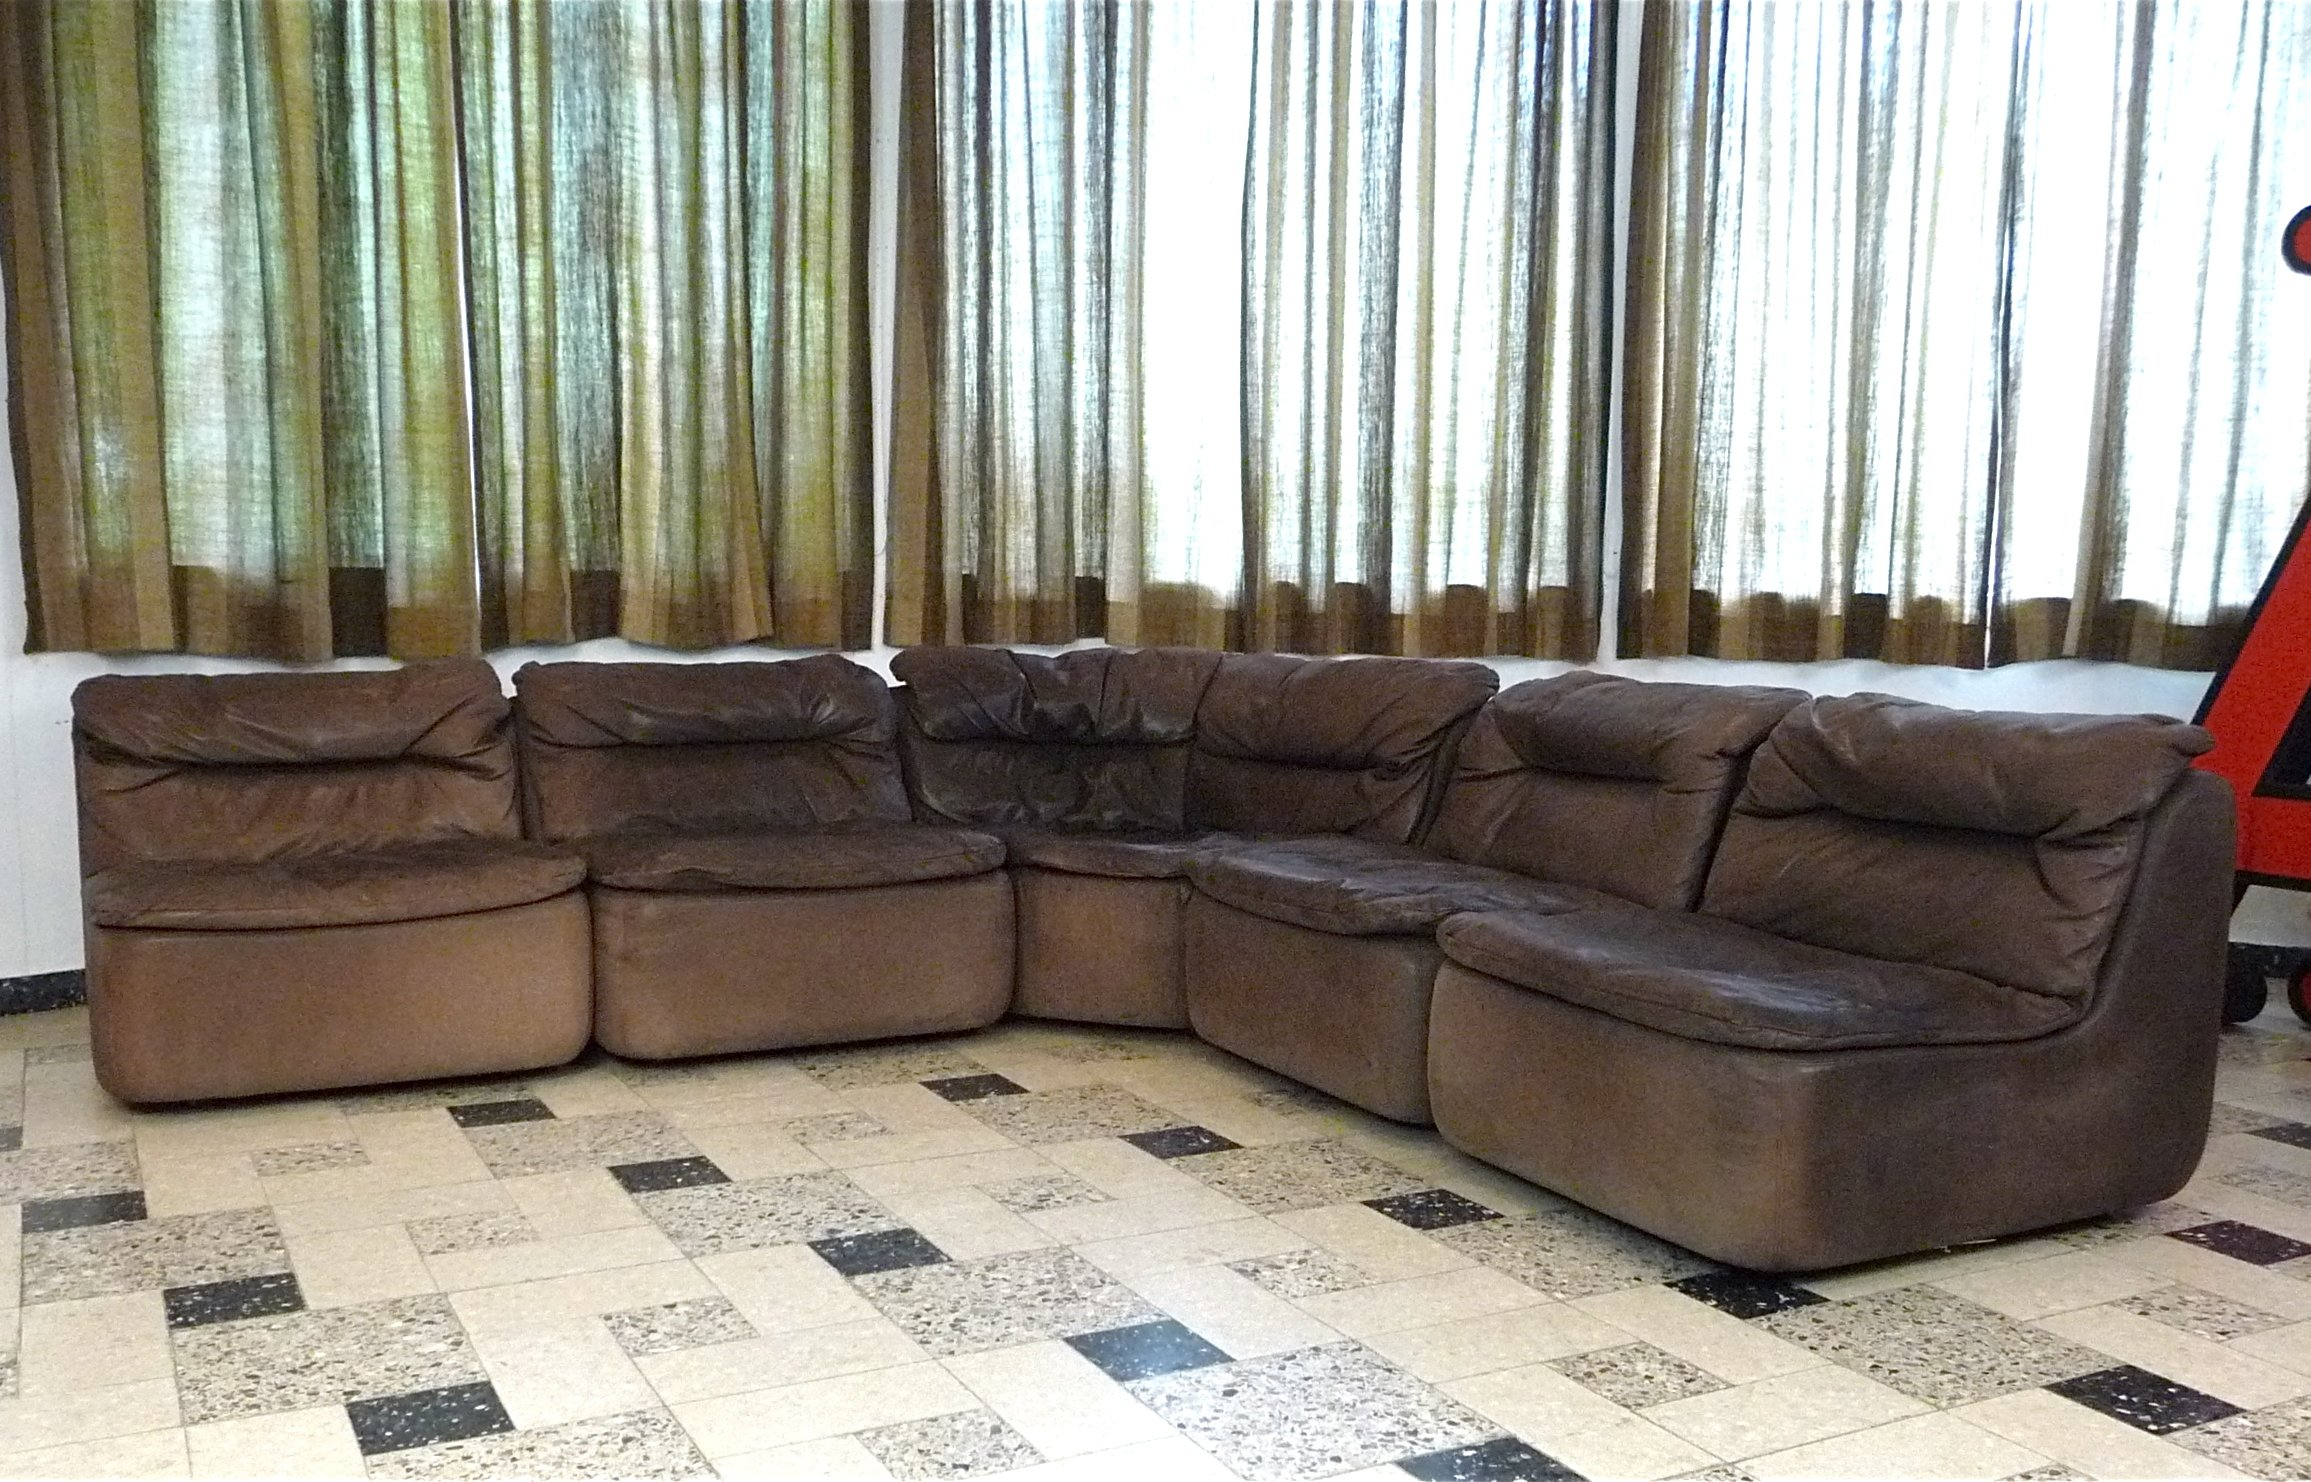 Plus 144 Sectional Corner Sofa By Friedrich Hill For Walter Knoll Collection 64825